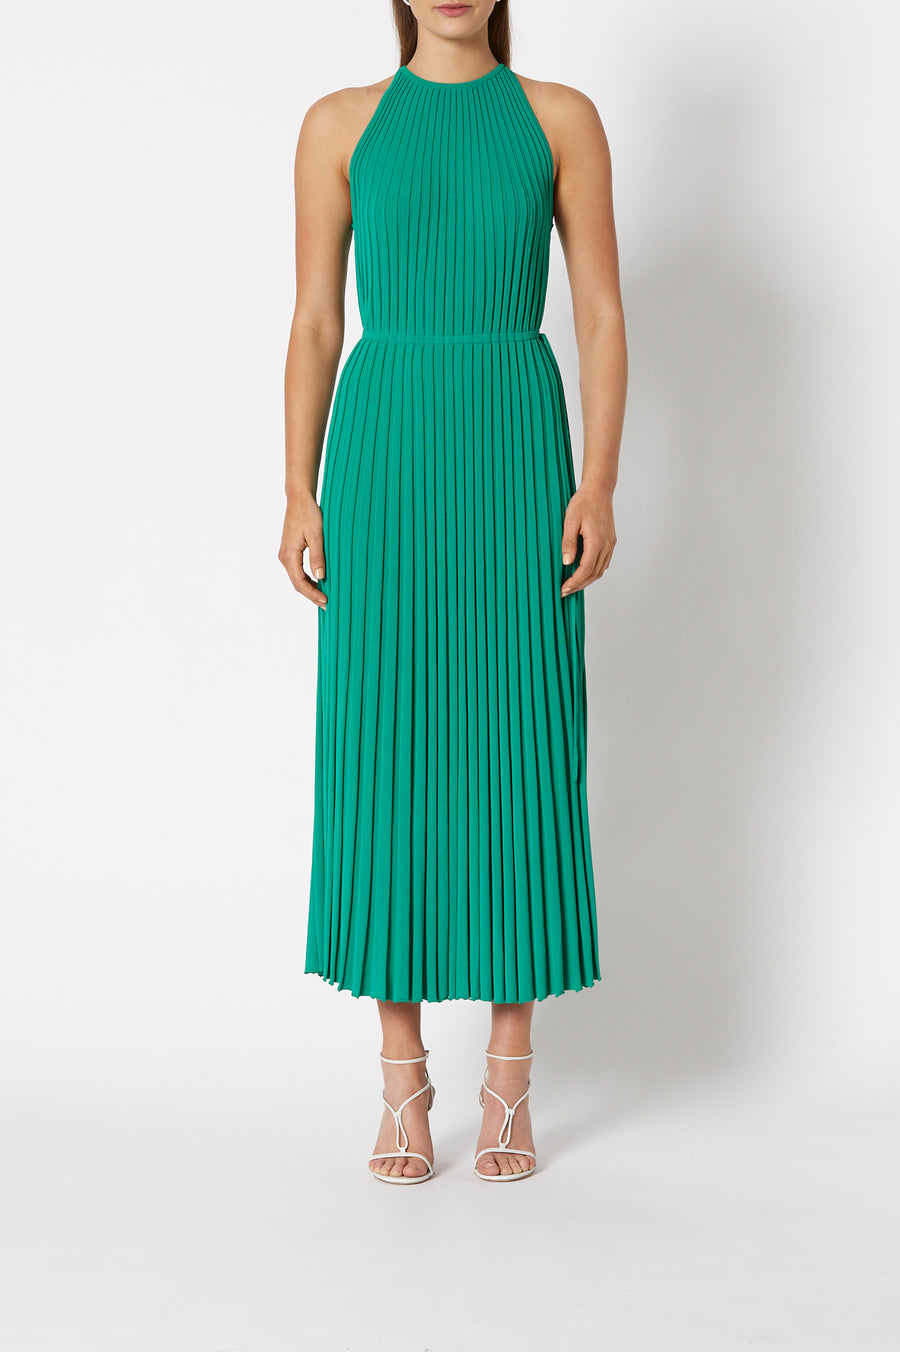 Pleated Rib Halter Gown is a halter dress with a tie closure at the back. The dress cinches in at the waist, color verde